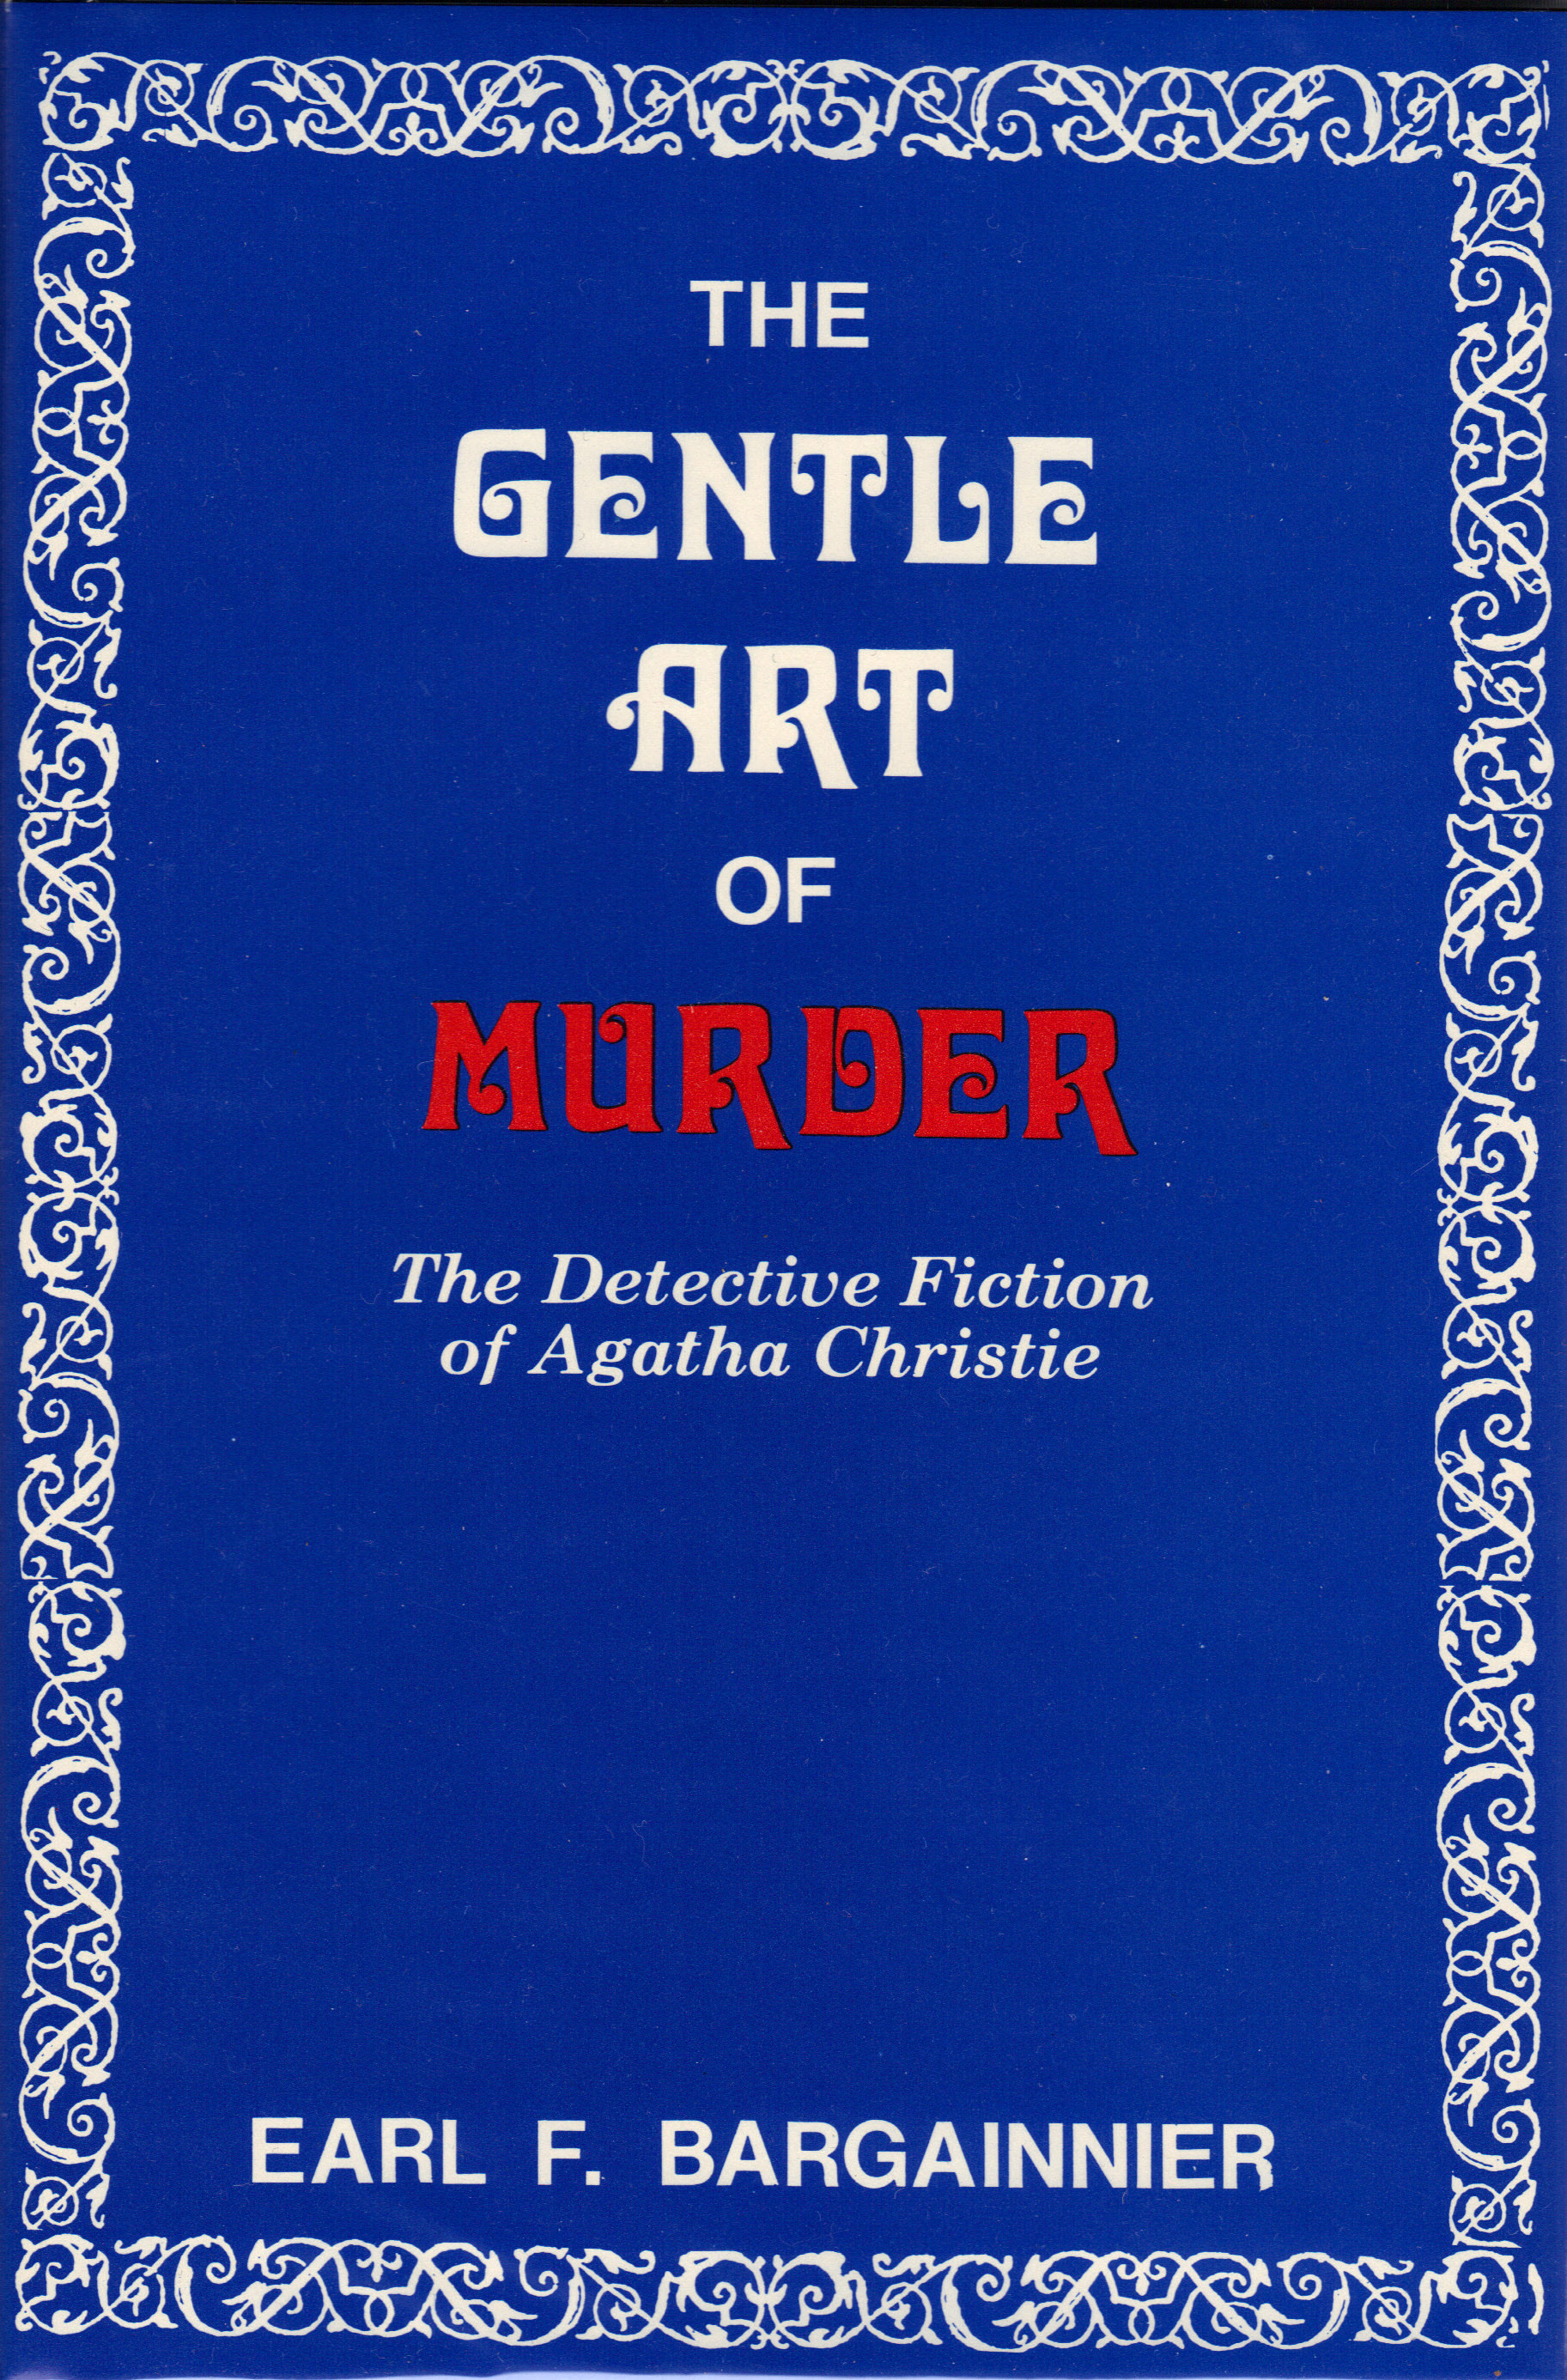 Image for THE GENTLE ART OF MURDER ~The Detective Fiction of Agatha Christie